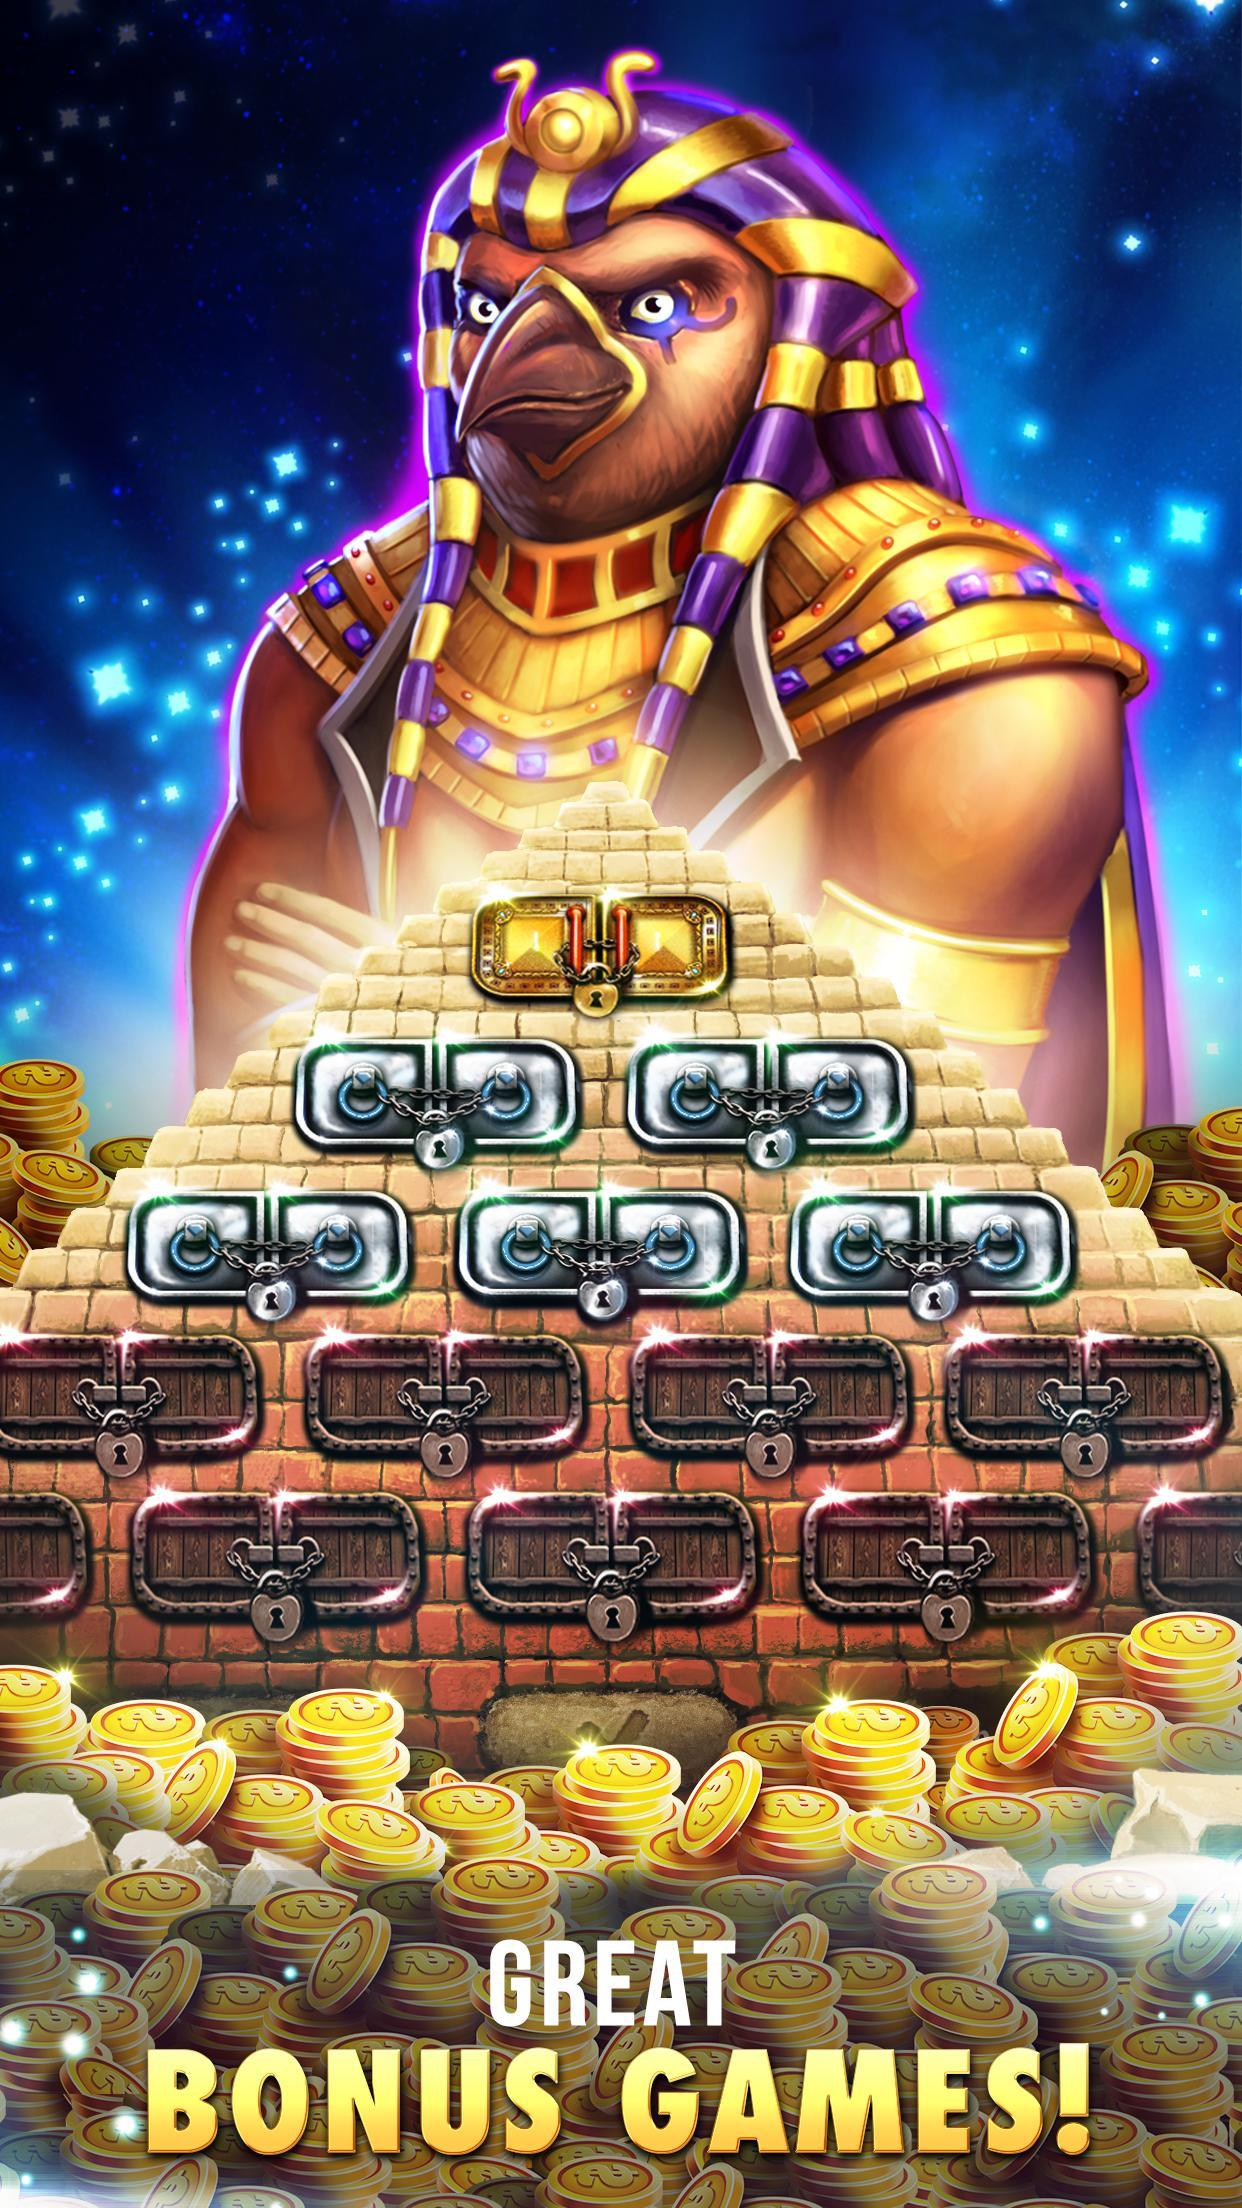 Slots™ - Pharaoh's adventure 2.8.3602 Screenshot 4